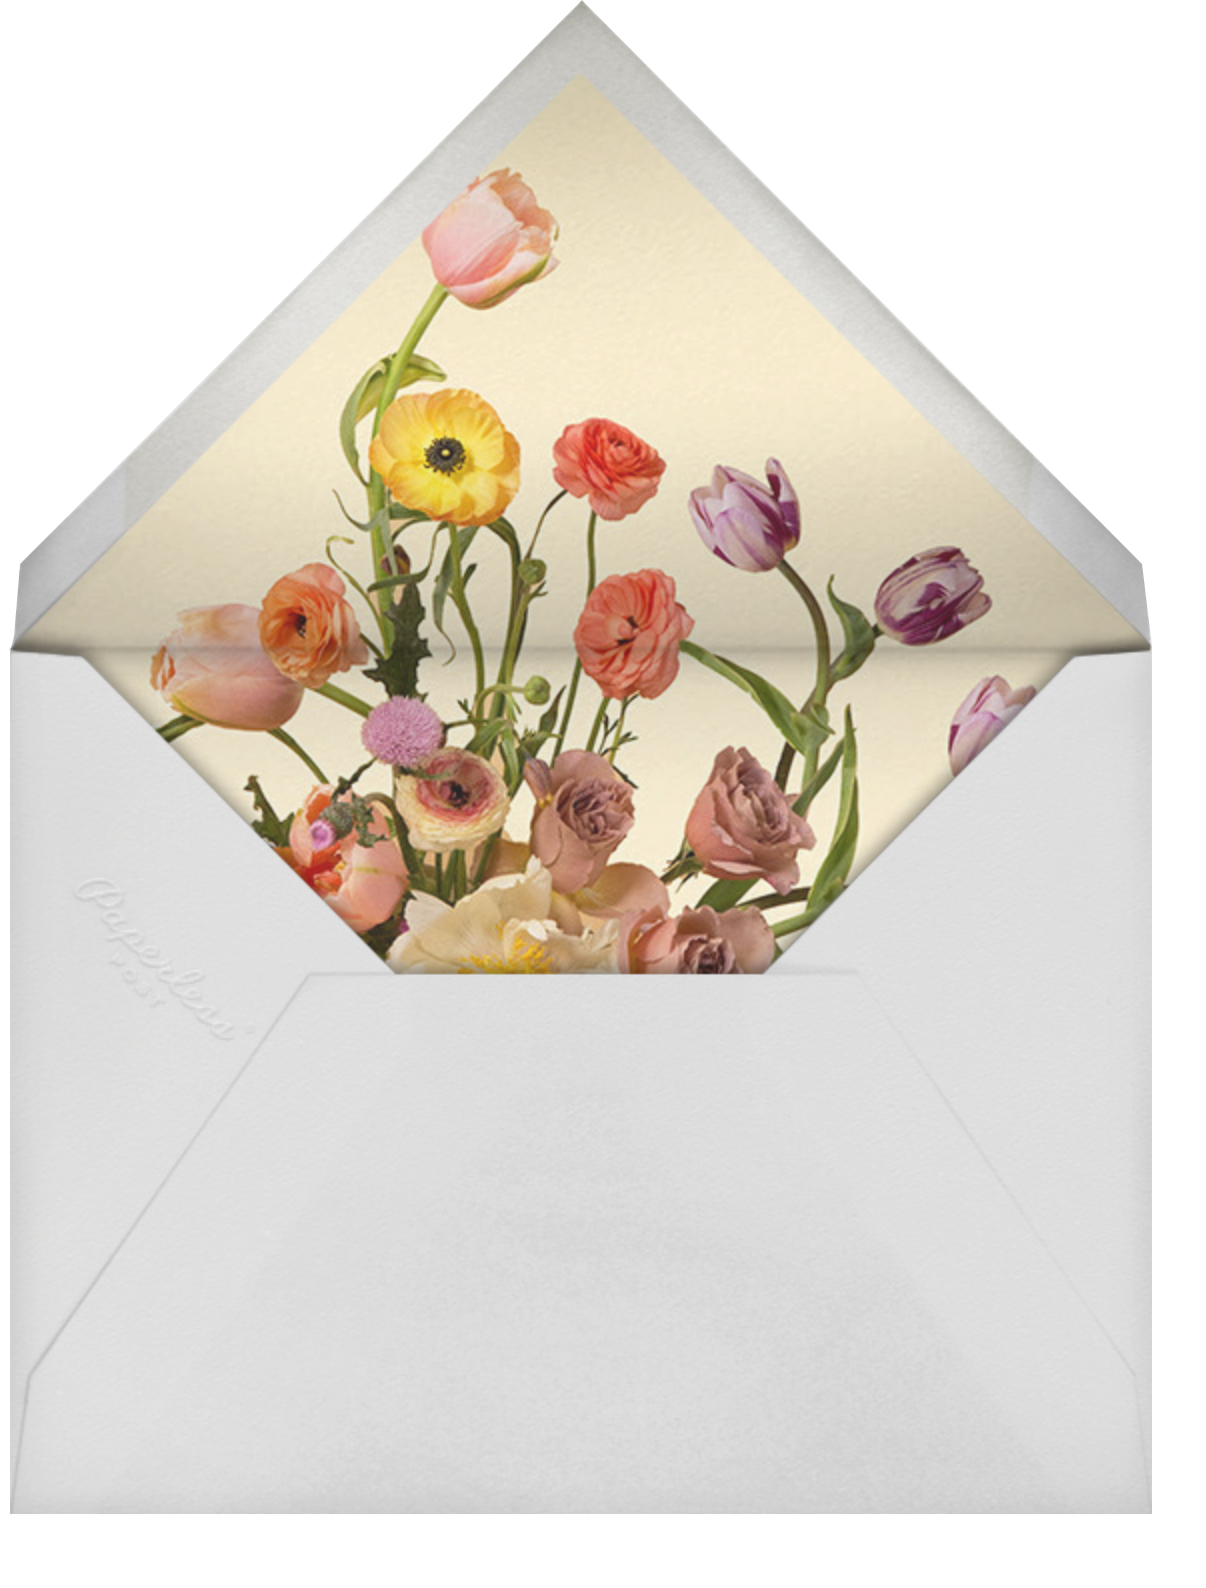 Prairial Photo - Putnam & Putnam - Engagement party - envelope back